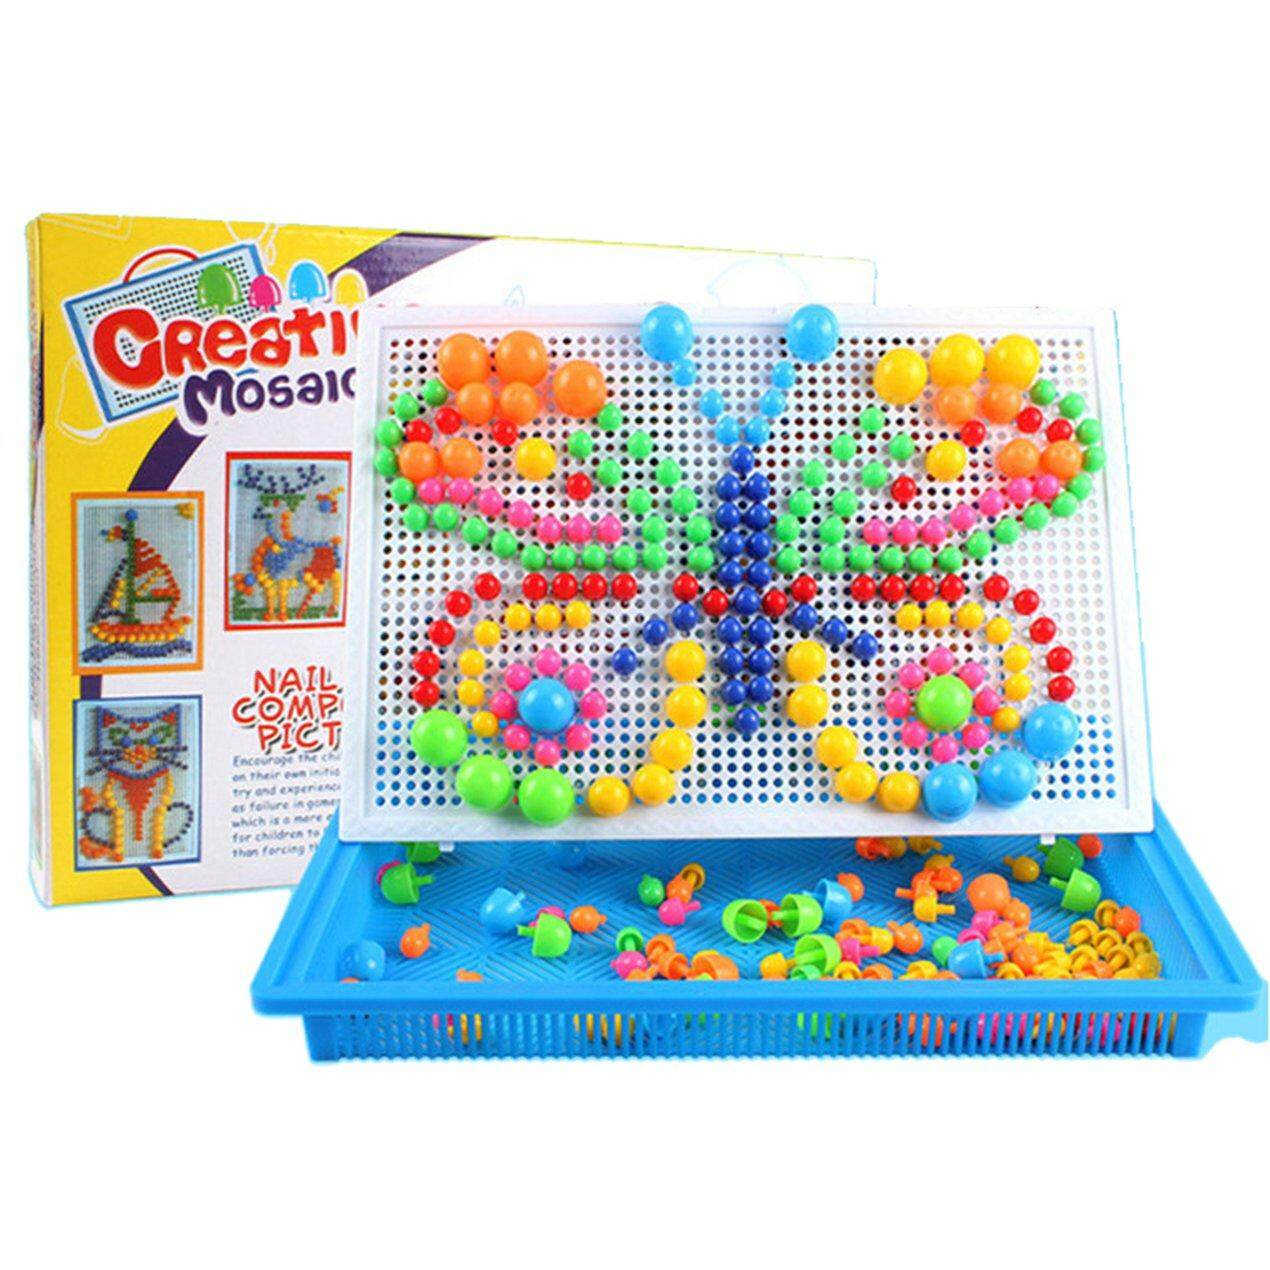 Most Popular Board Toy Combination Spelling Puzzles Handmade Science And Education Toys